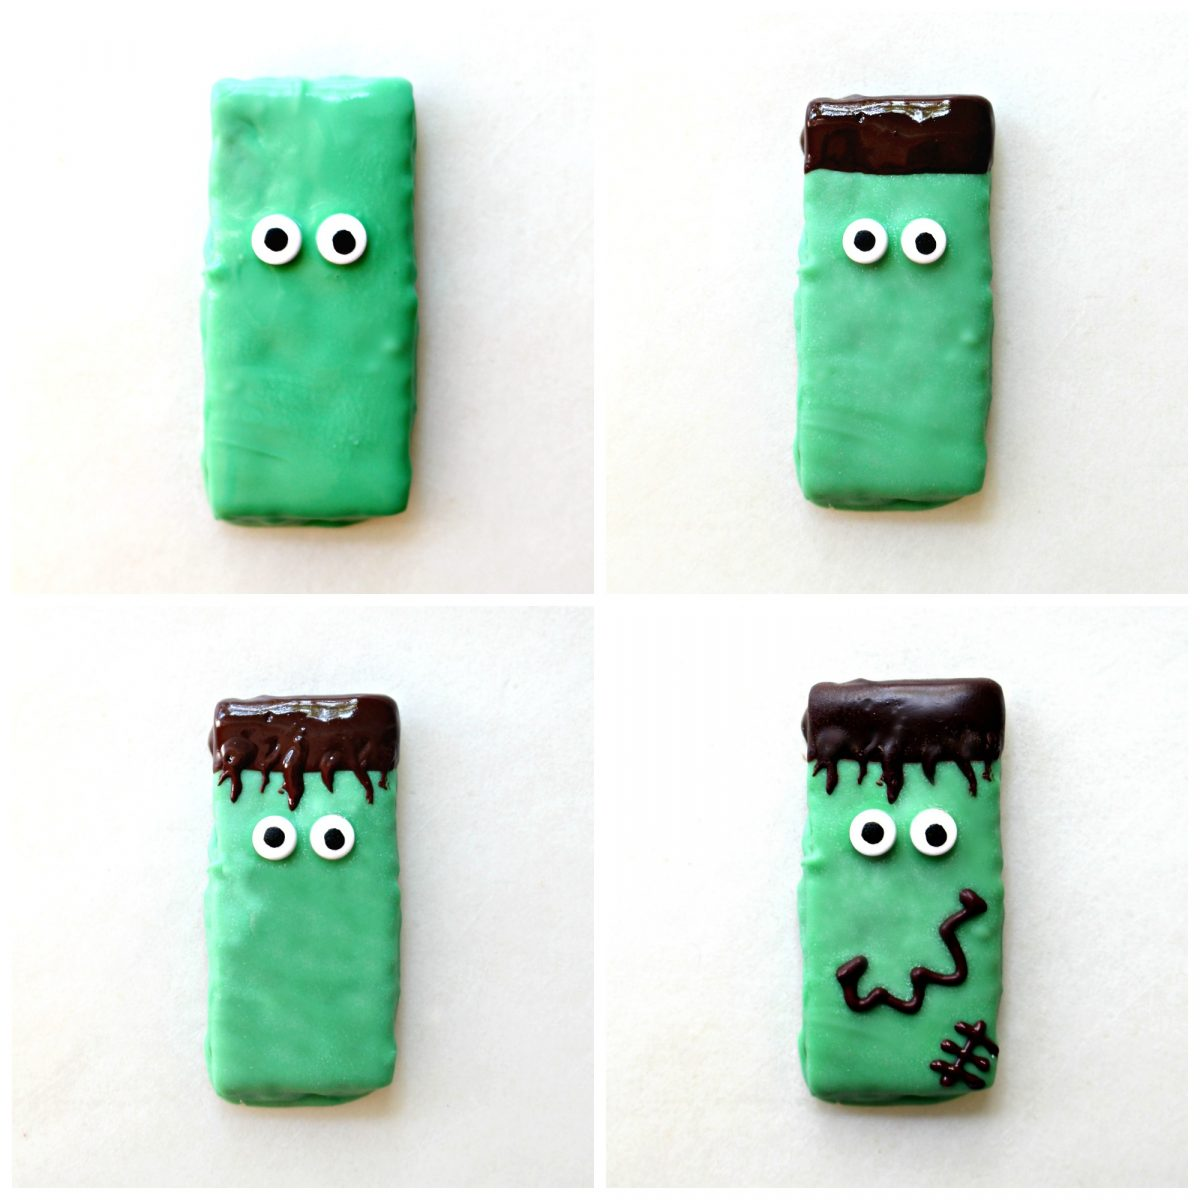 Frankenstein cookie decorating: green coating with candy eyes, top end chocolate dipped, chocolate hair, mouth, scar.